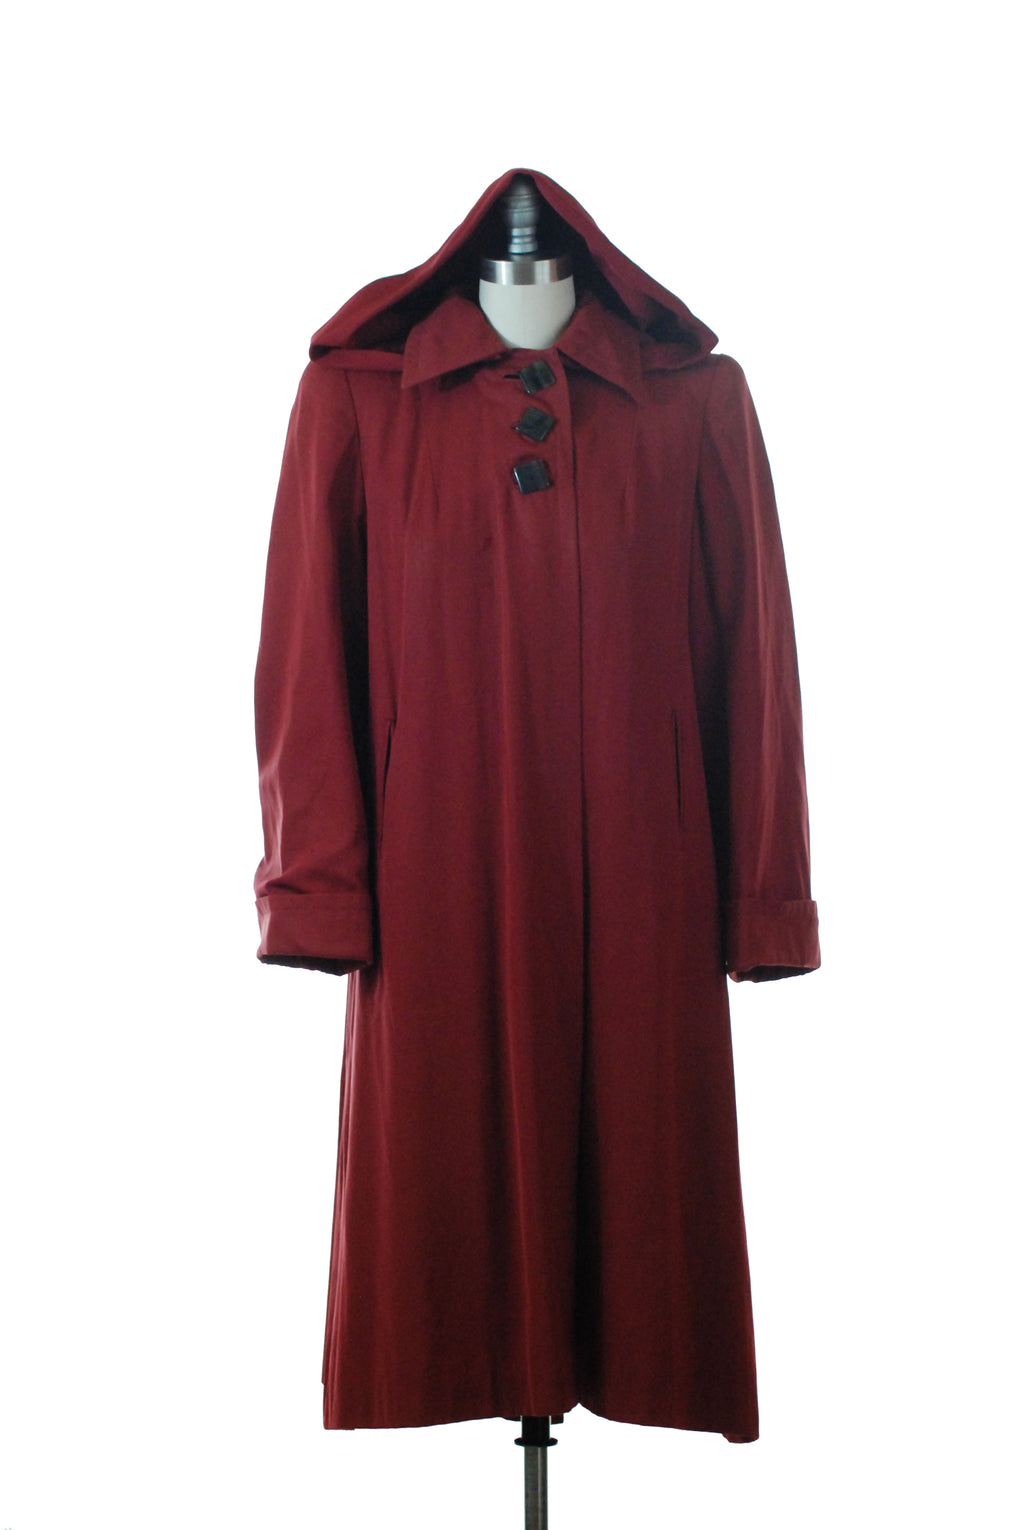 Charming 1940s Burgundy gab Swingy Rain Coat with Detachable Hood